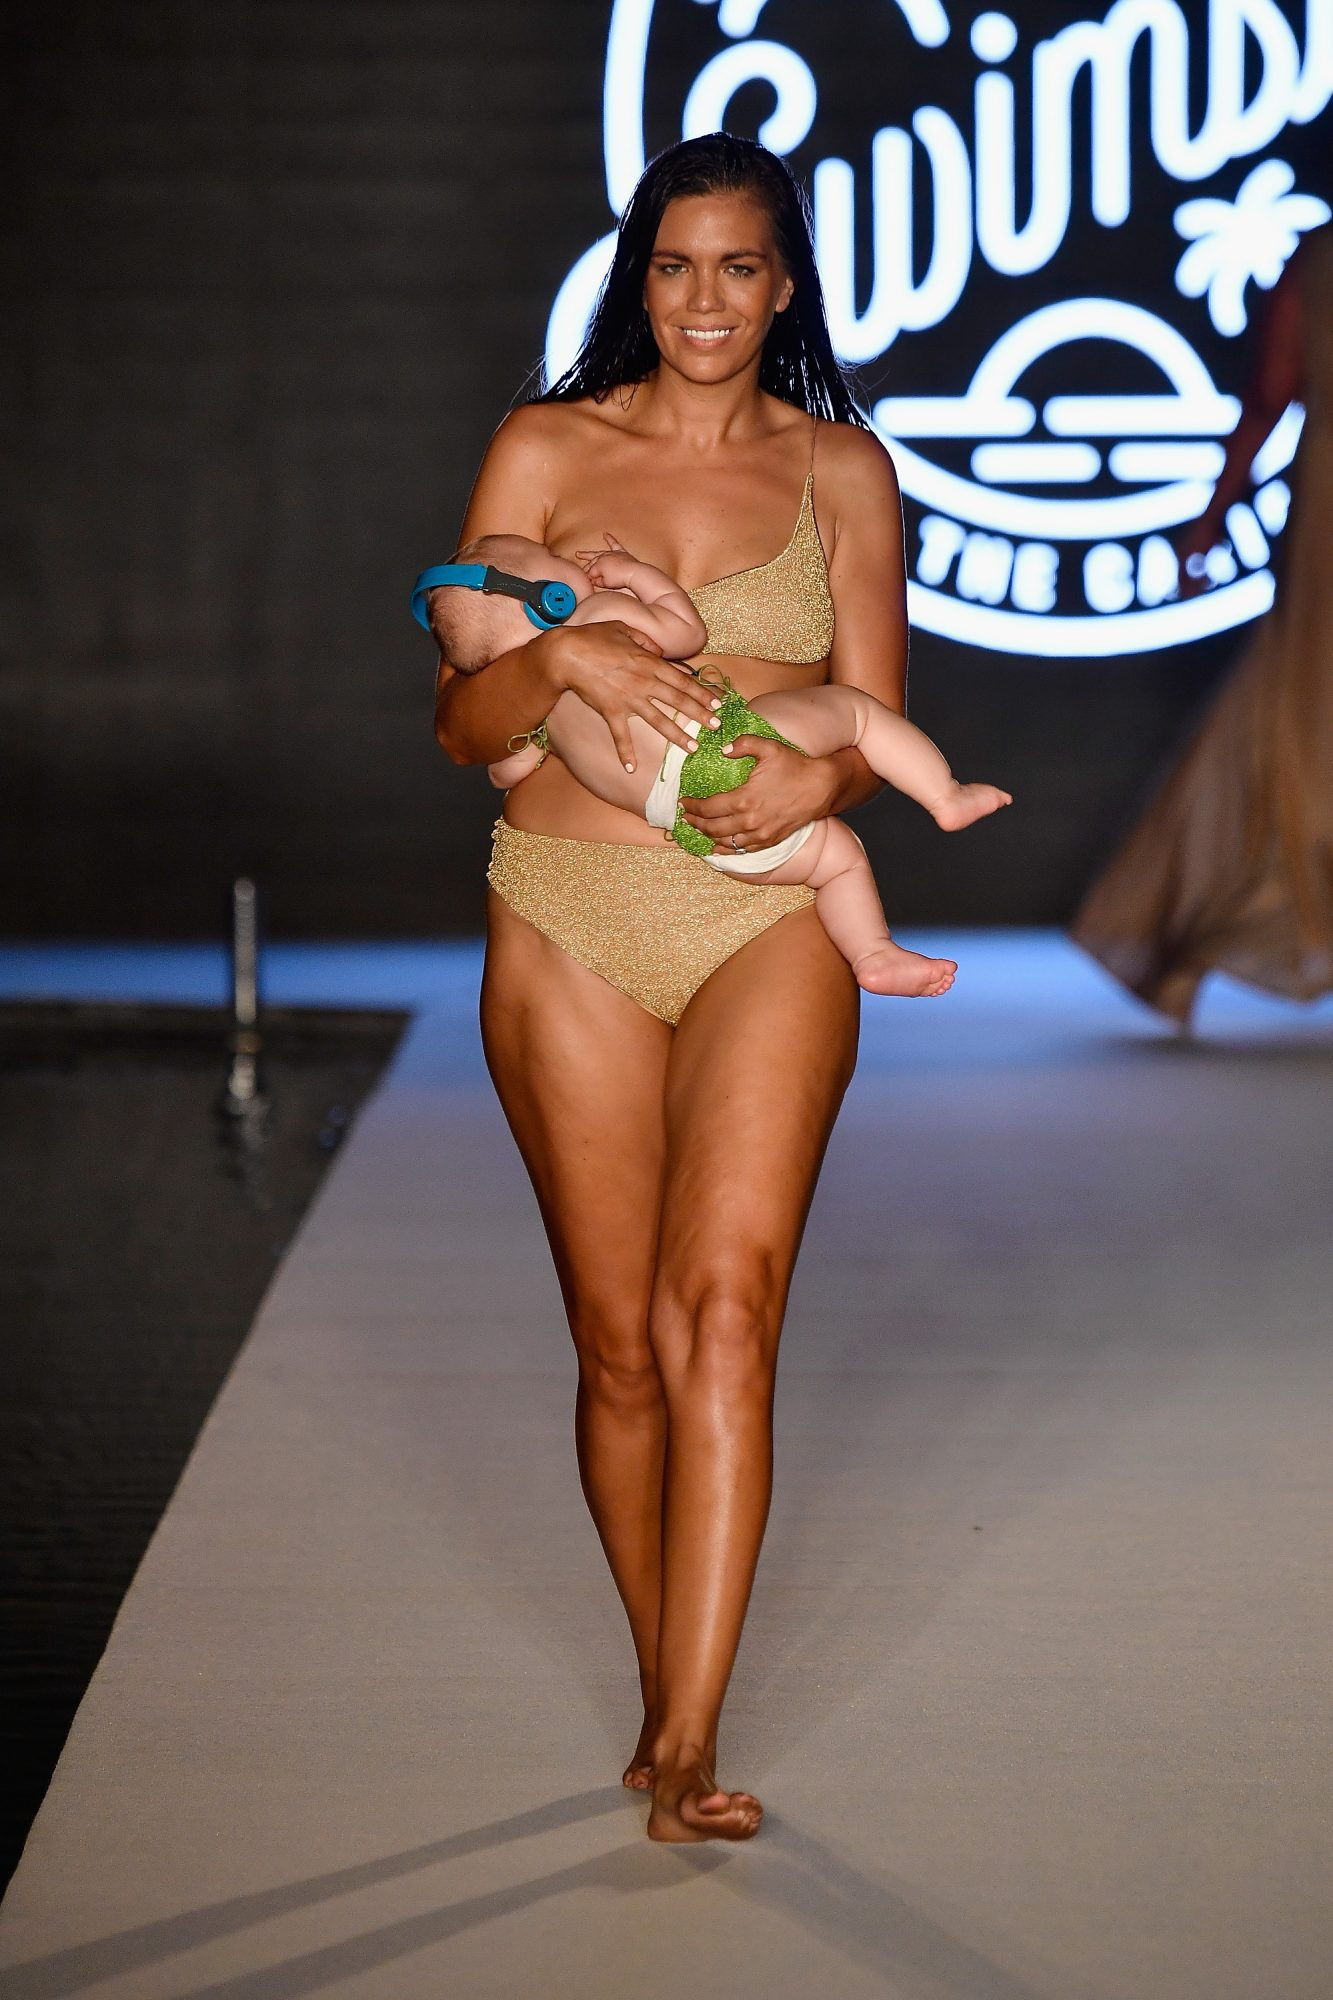 2018 Sports Illustrated Swimsuit at PARAISO During Miami Swim Week, W South Beach - Runway breastfeeding